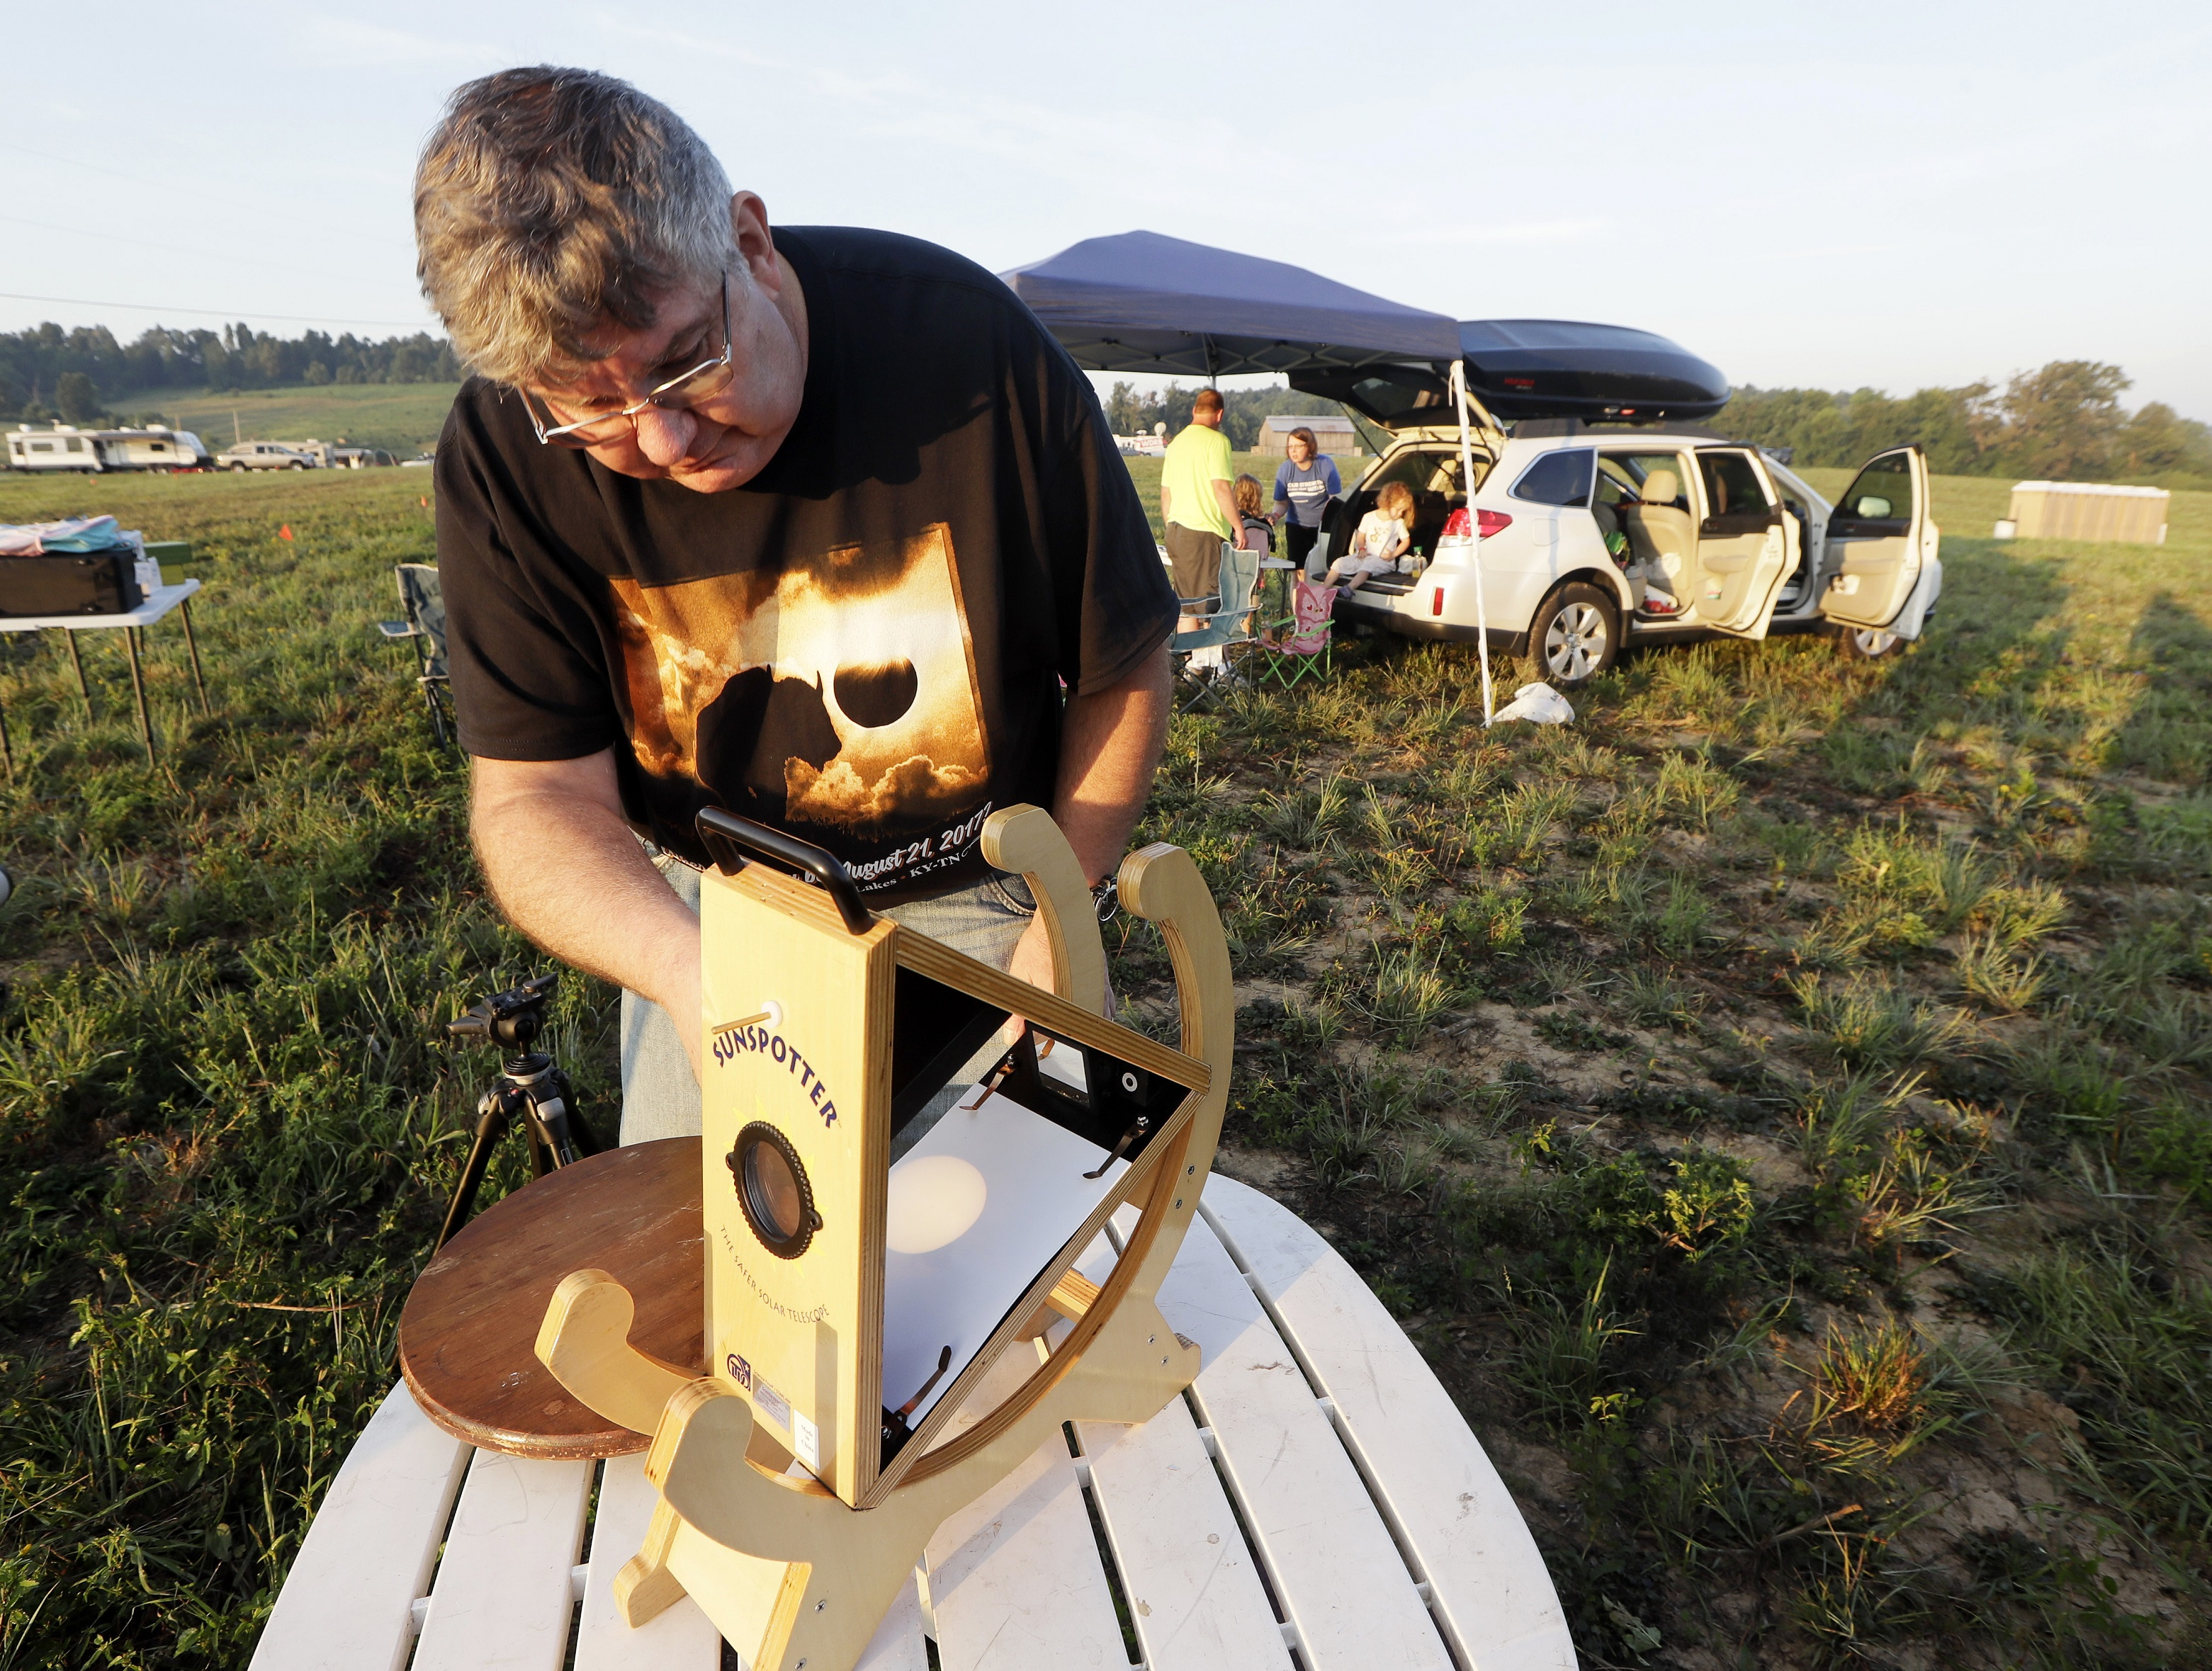 Someone sets up a Sunspotter, a device for viewing the solar eclipse